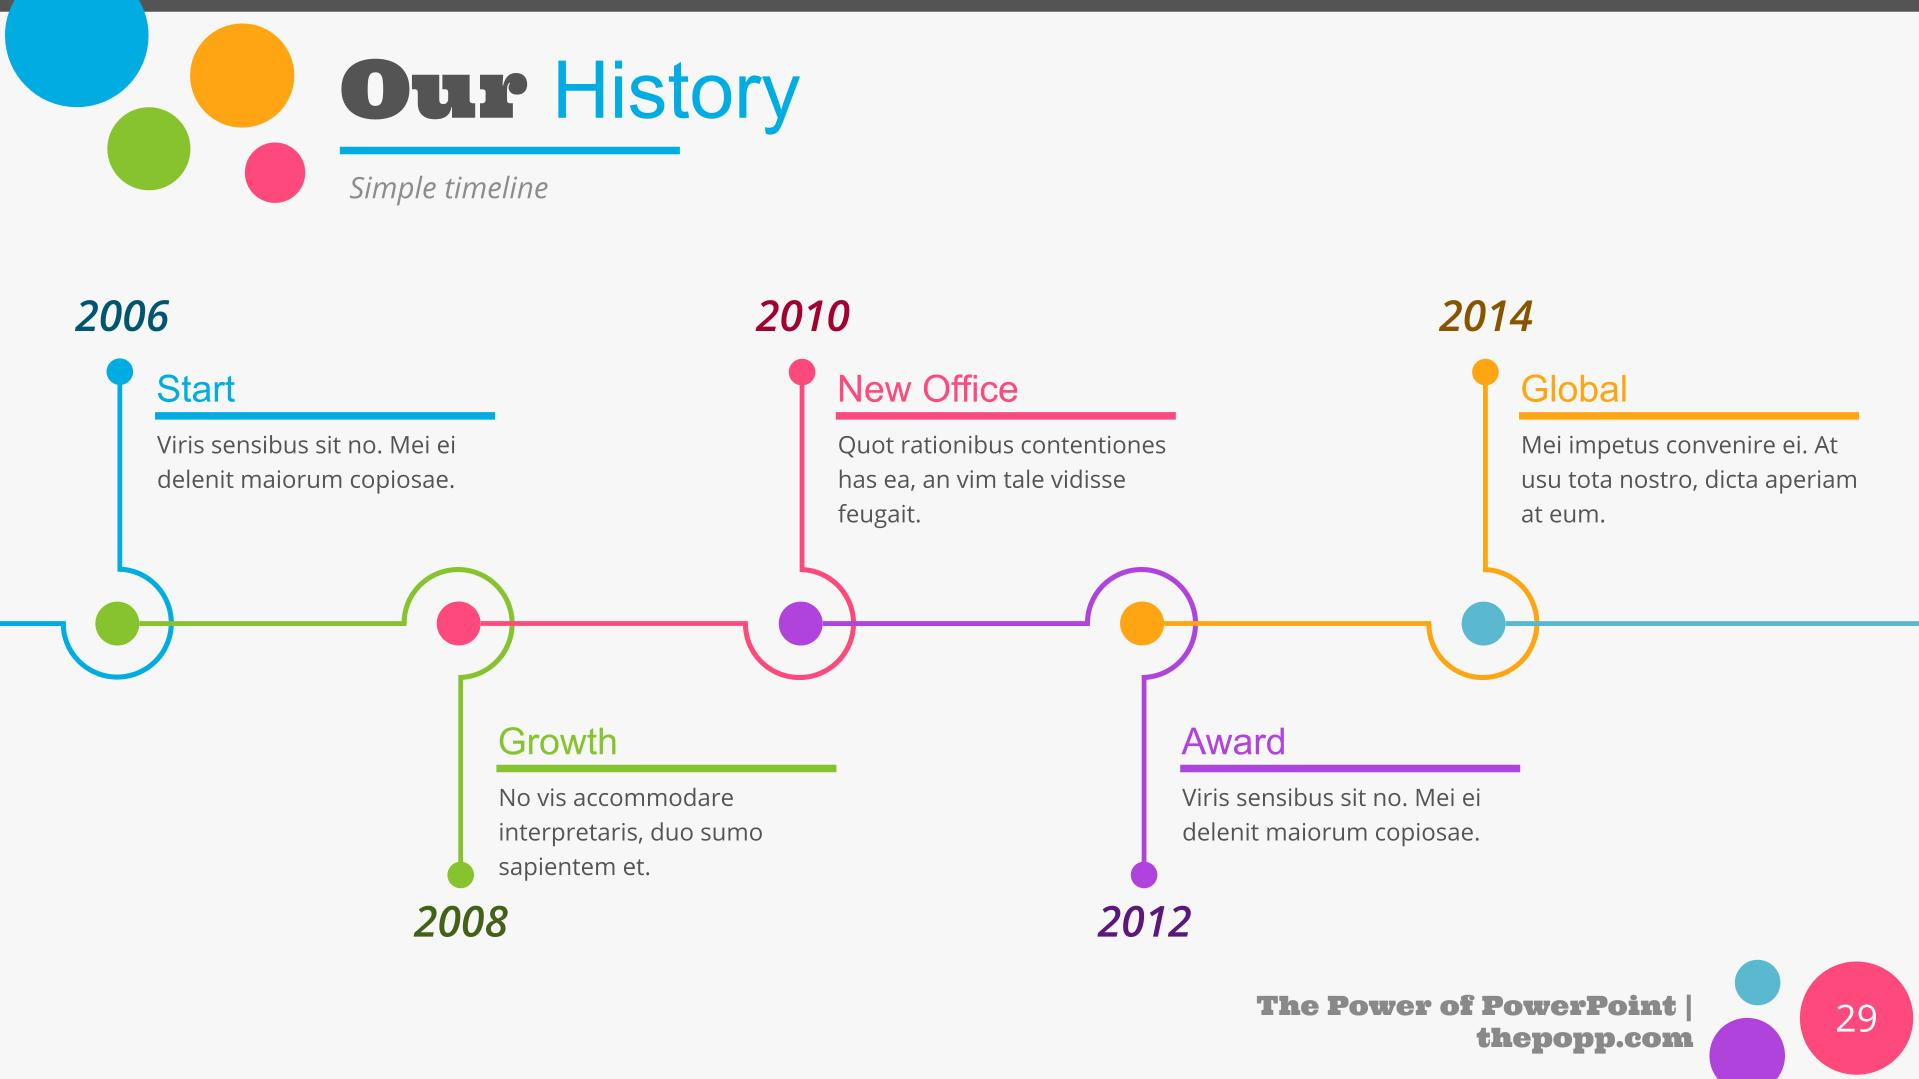 The story is framed by a timeline with colorful stopping points.